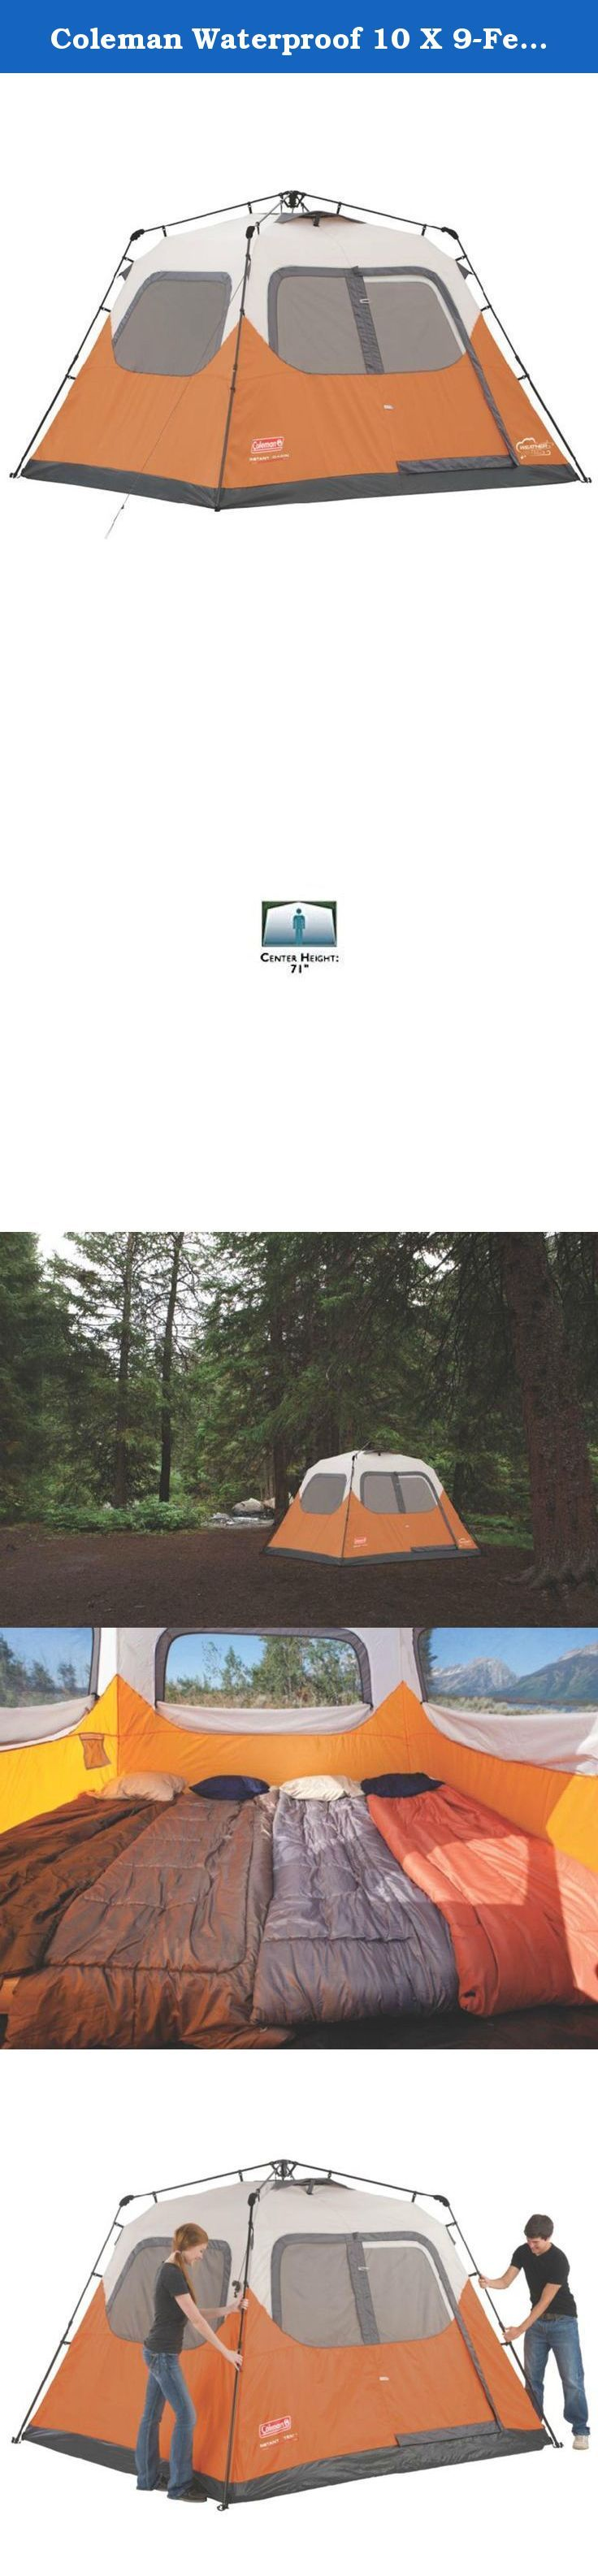 Coleman Waterproof 10 X 9-Feet 6-Person Instant Tent, Orange. The Coleman 6-Person Camping Instant Tent comes with the WeatherTec system that guarantees to keep you dry. This tent has poles that are pre-attached to the tent, and takes only one minute to set up and take down. It features a spacious interior, 150D fabric (twice as thick as regular tent fabric) and there's no need for a separate rainfly because the tent is fully taped. The tent can accommodate two queen sized beds, and with…